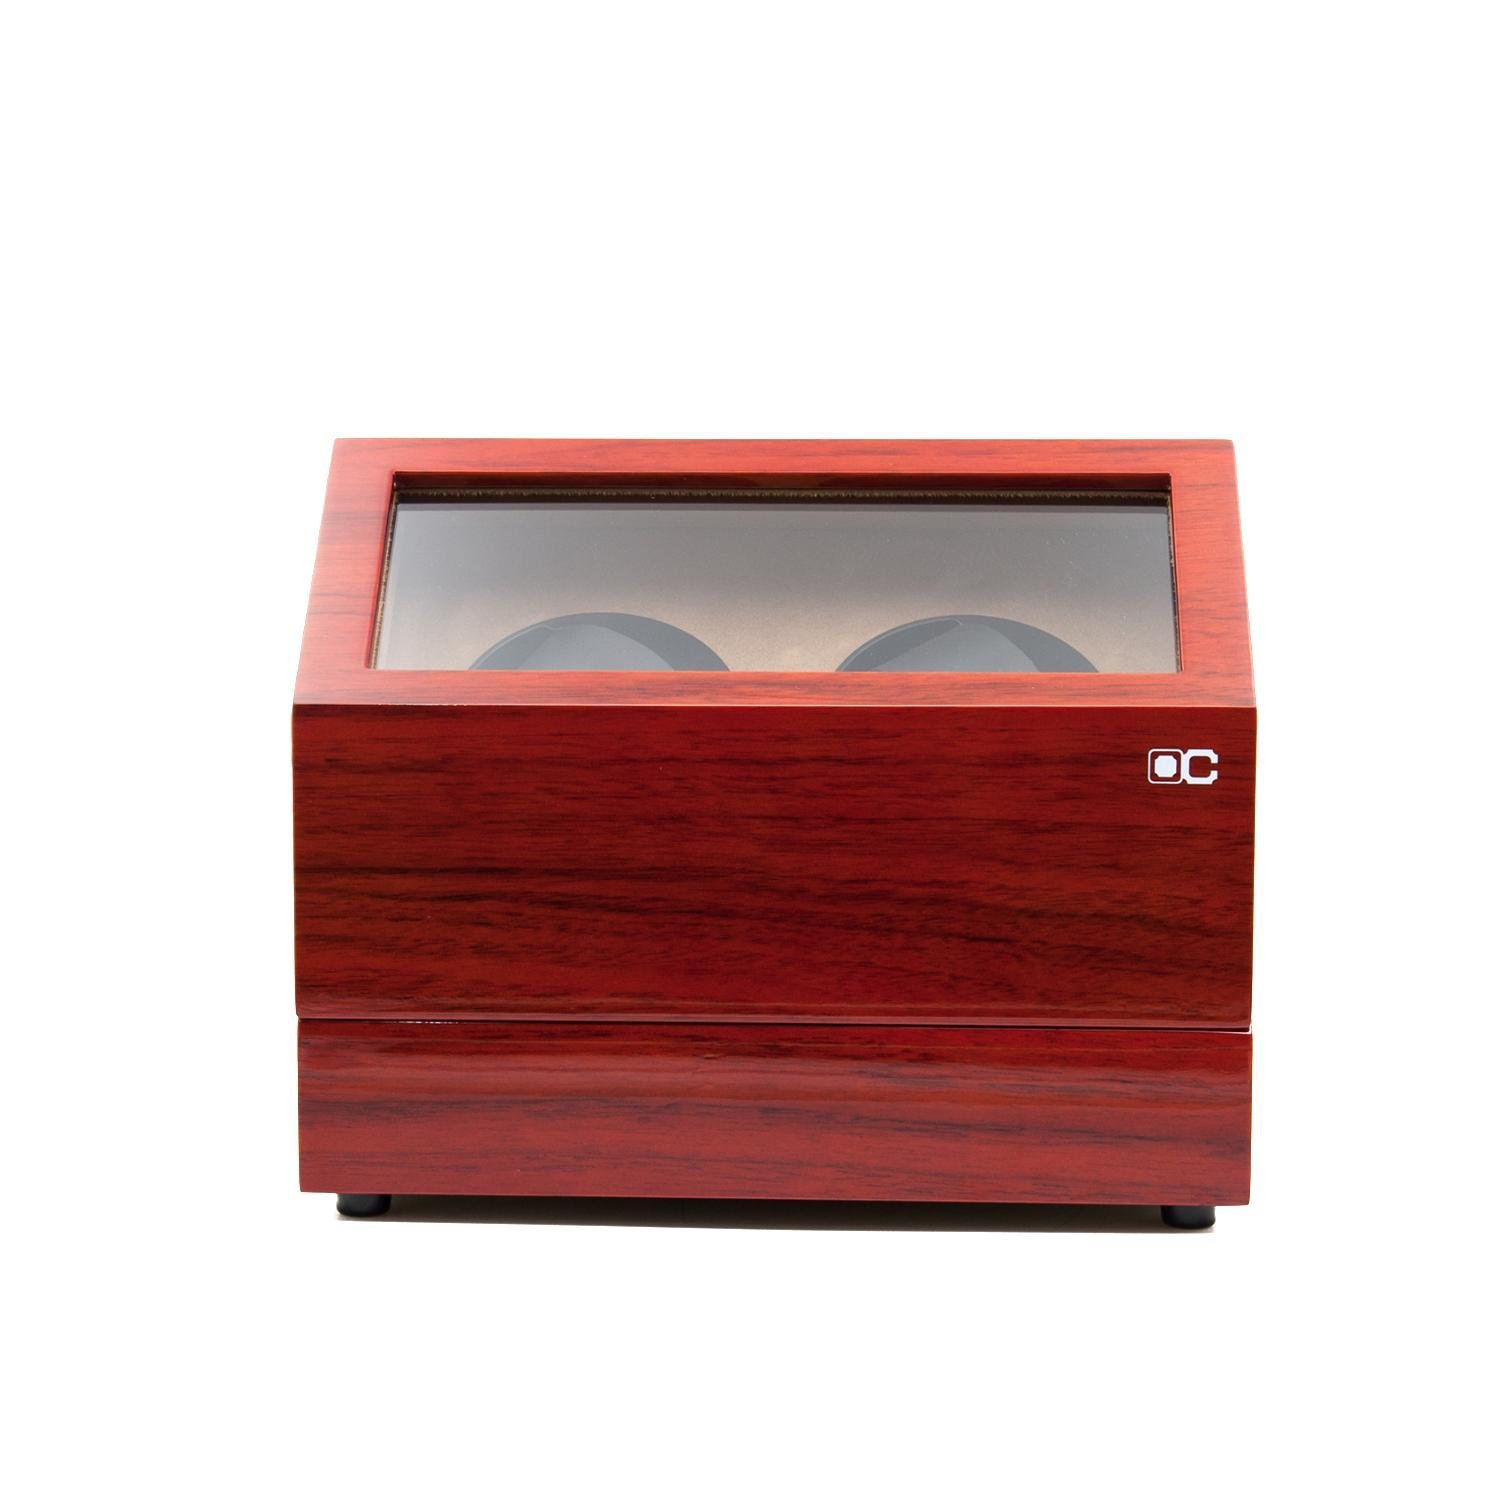 KAIHE-BOX Classic Watch Winders for 2 Watches for automatic Watch Winder Rotator Case Cover Storage(2 color,ww-02132) , Red by KAIHE-BOX (Image #3)